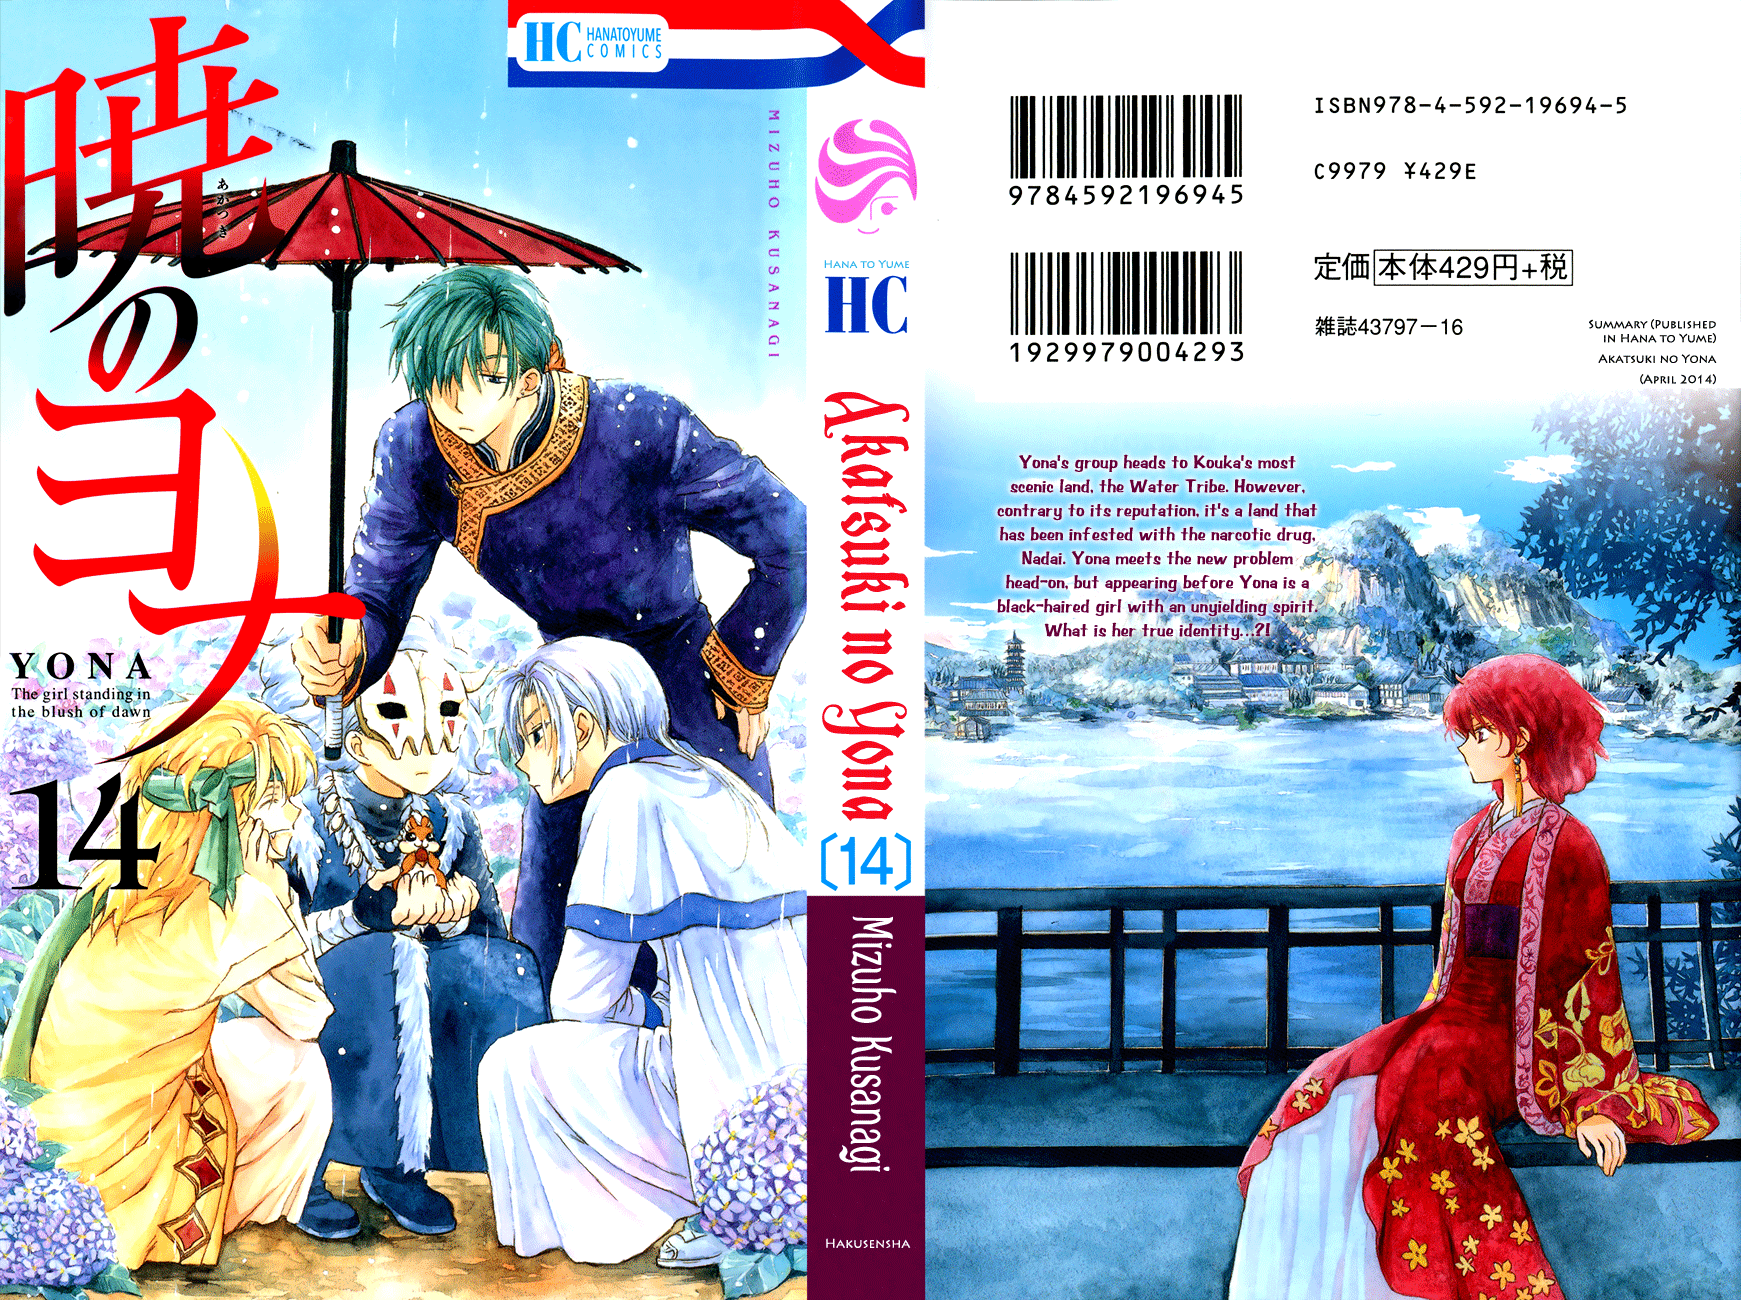 Akatsuki no Yona – 077_ A Town Drenched in Drizzle